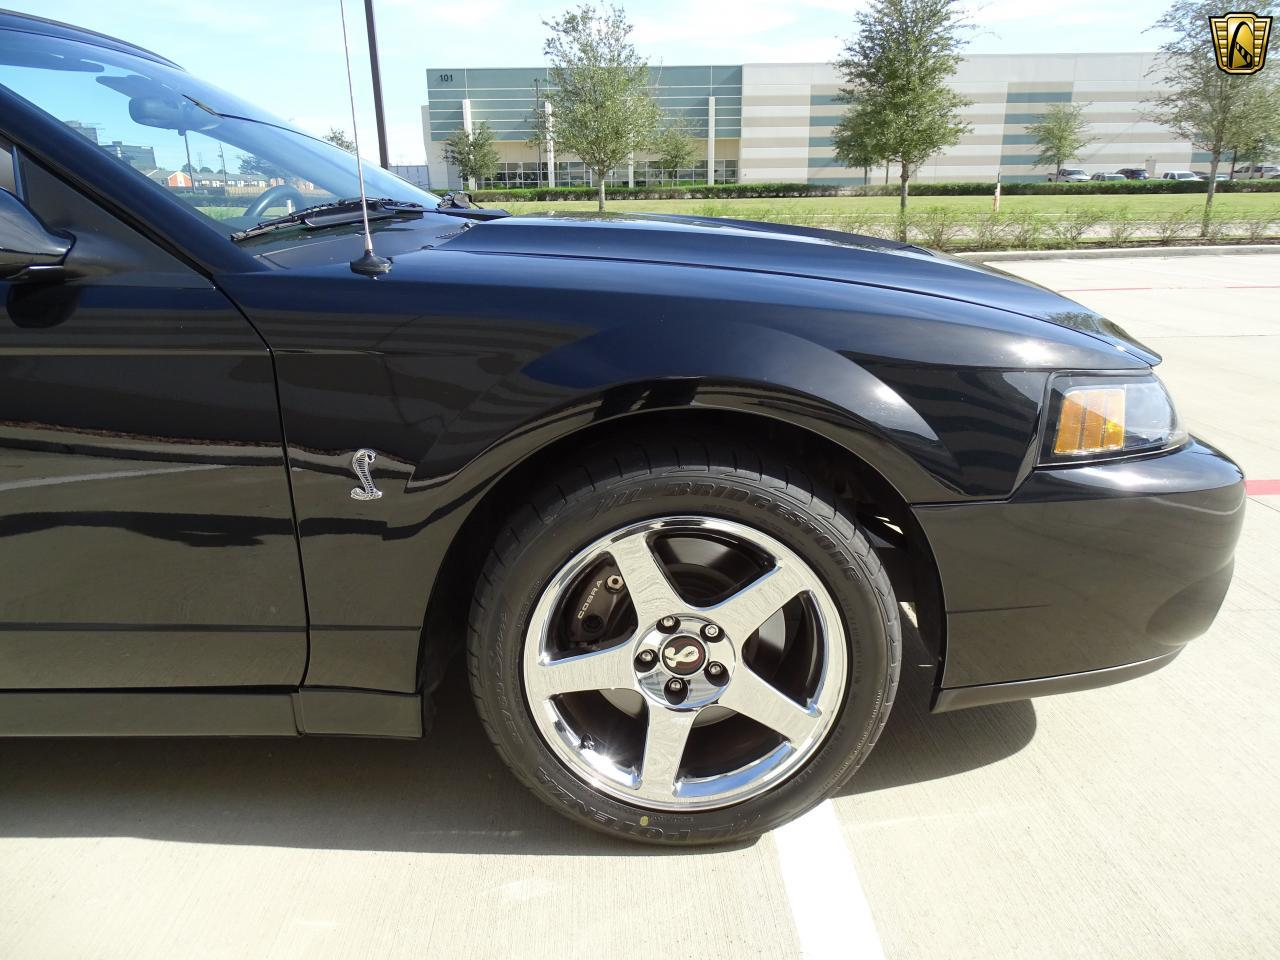 Large Picture of 2003 Ford Mustang located in Texas - $27,995.00 Offered by Gateway Classic Cars - Houston - KES2